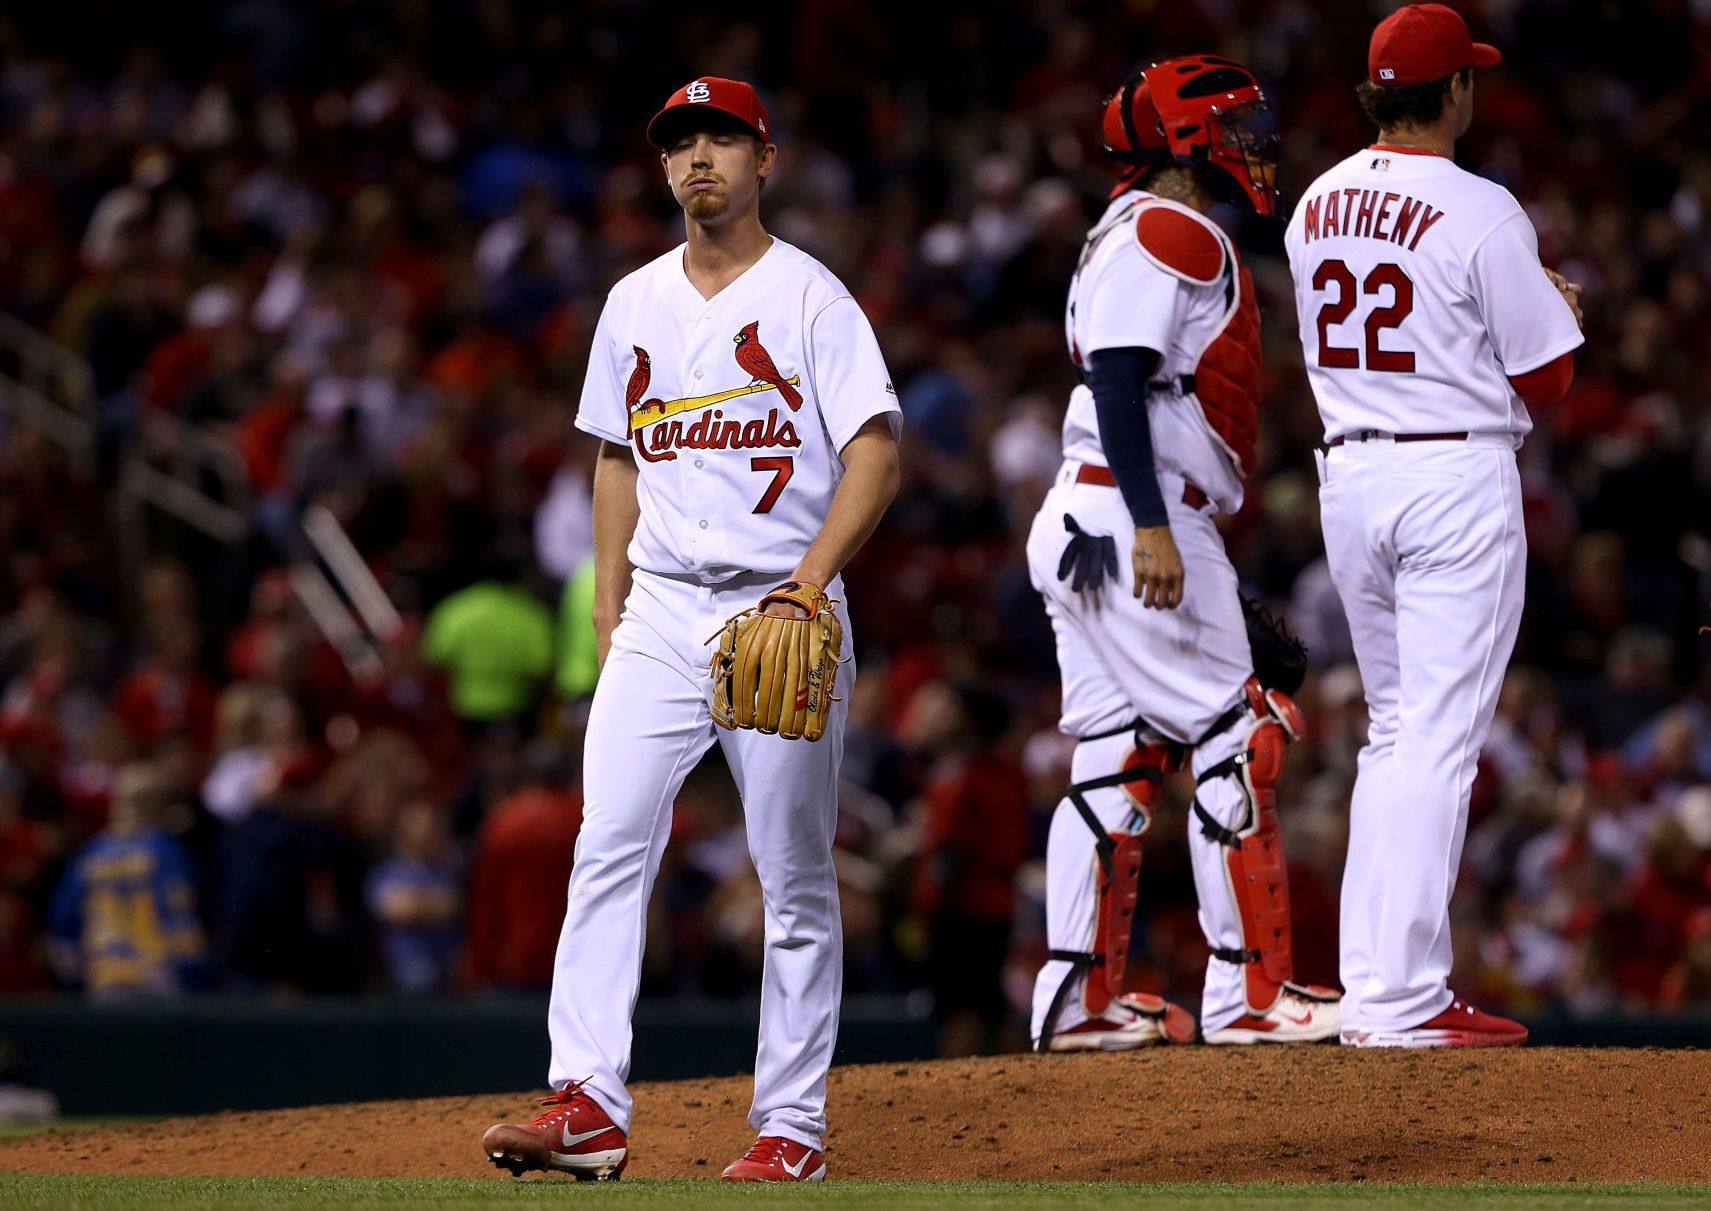 reduced to challenging a home run trot cardinals hand game over to rh stltoday com